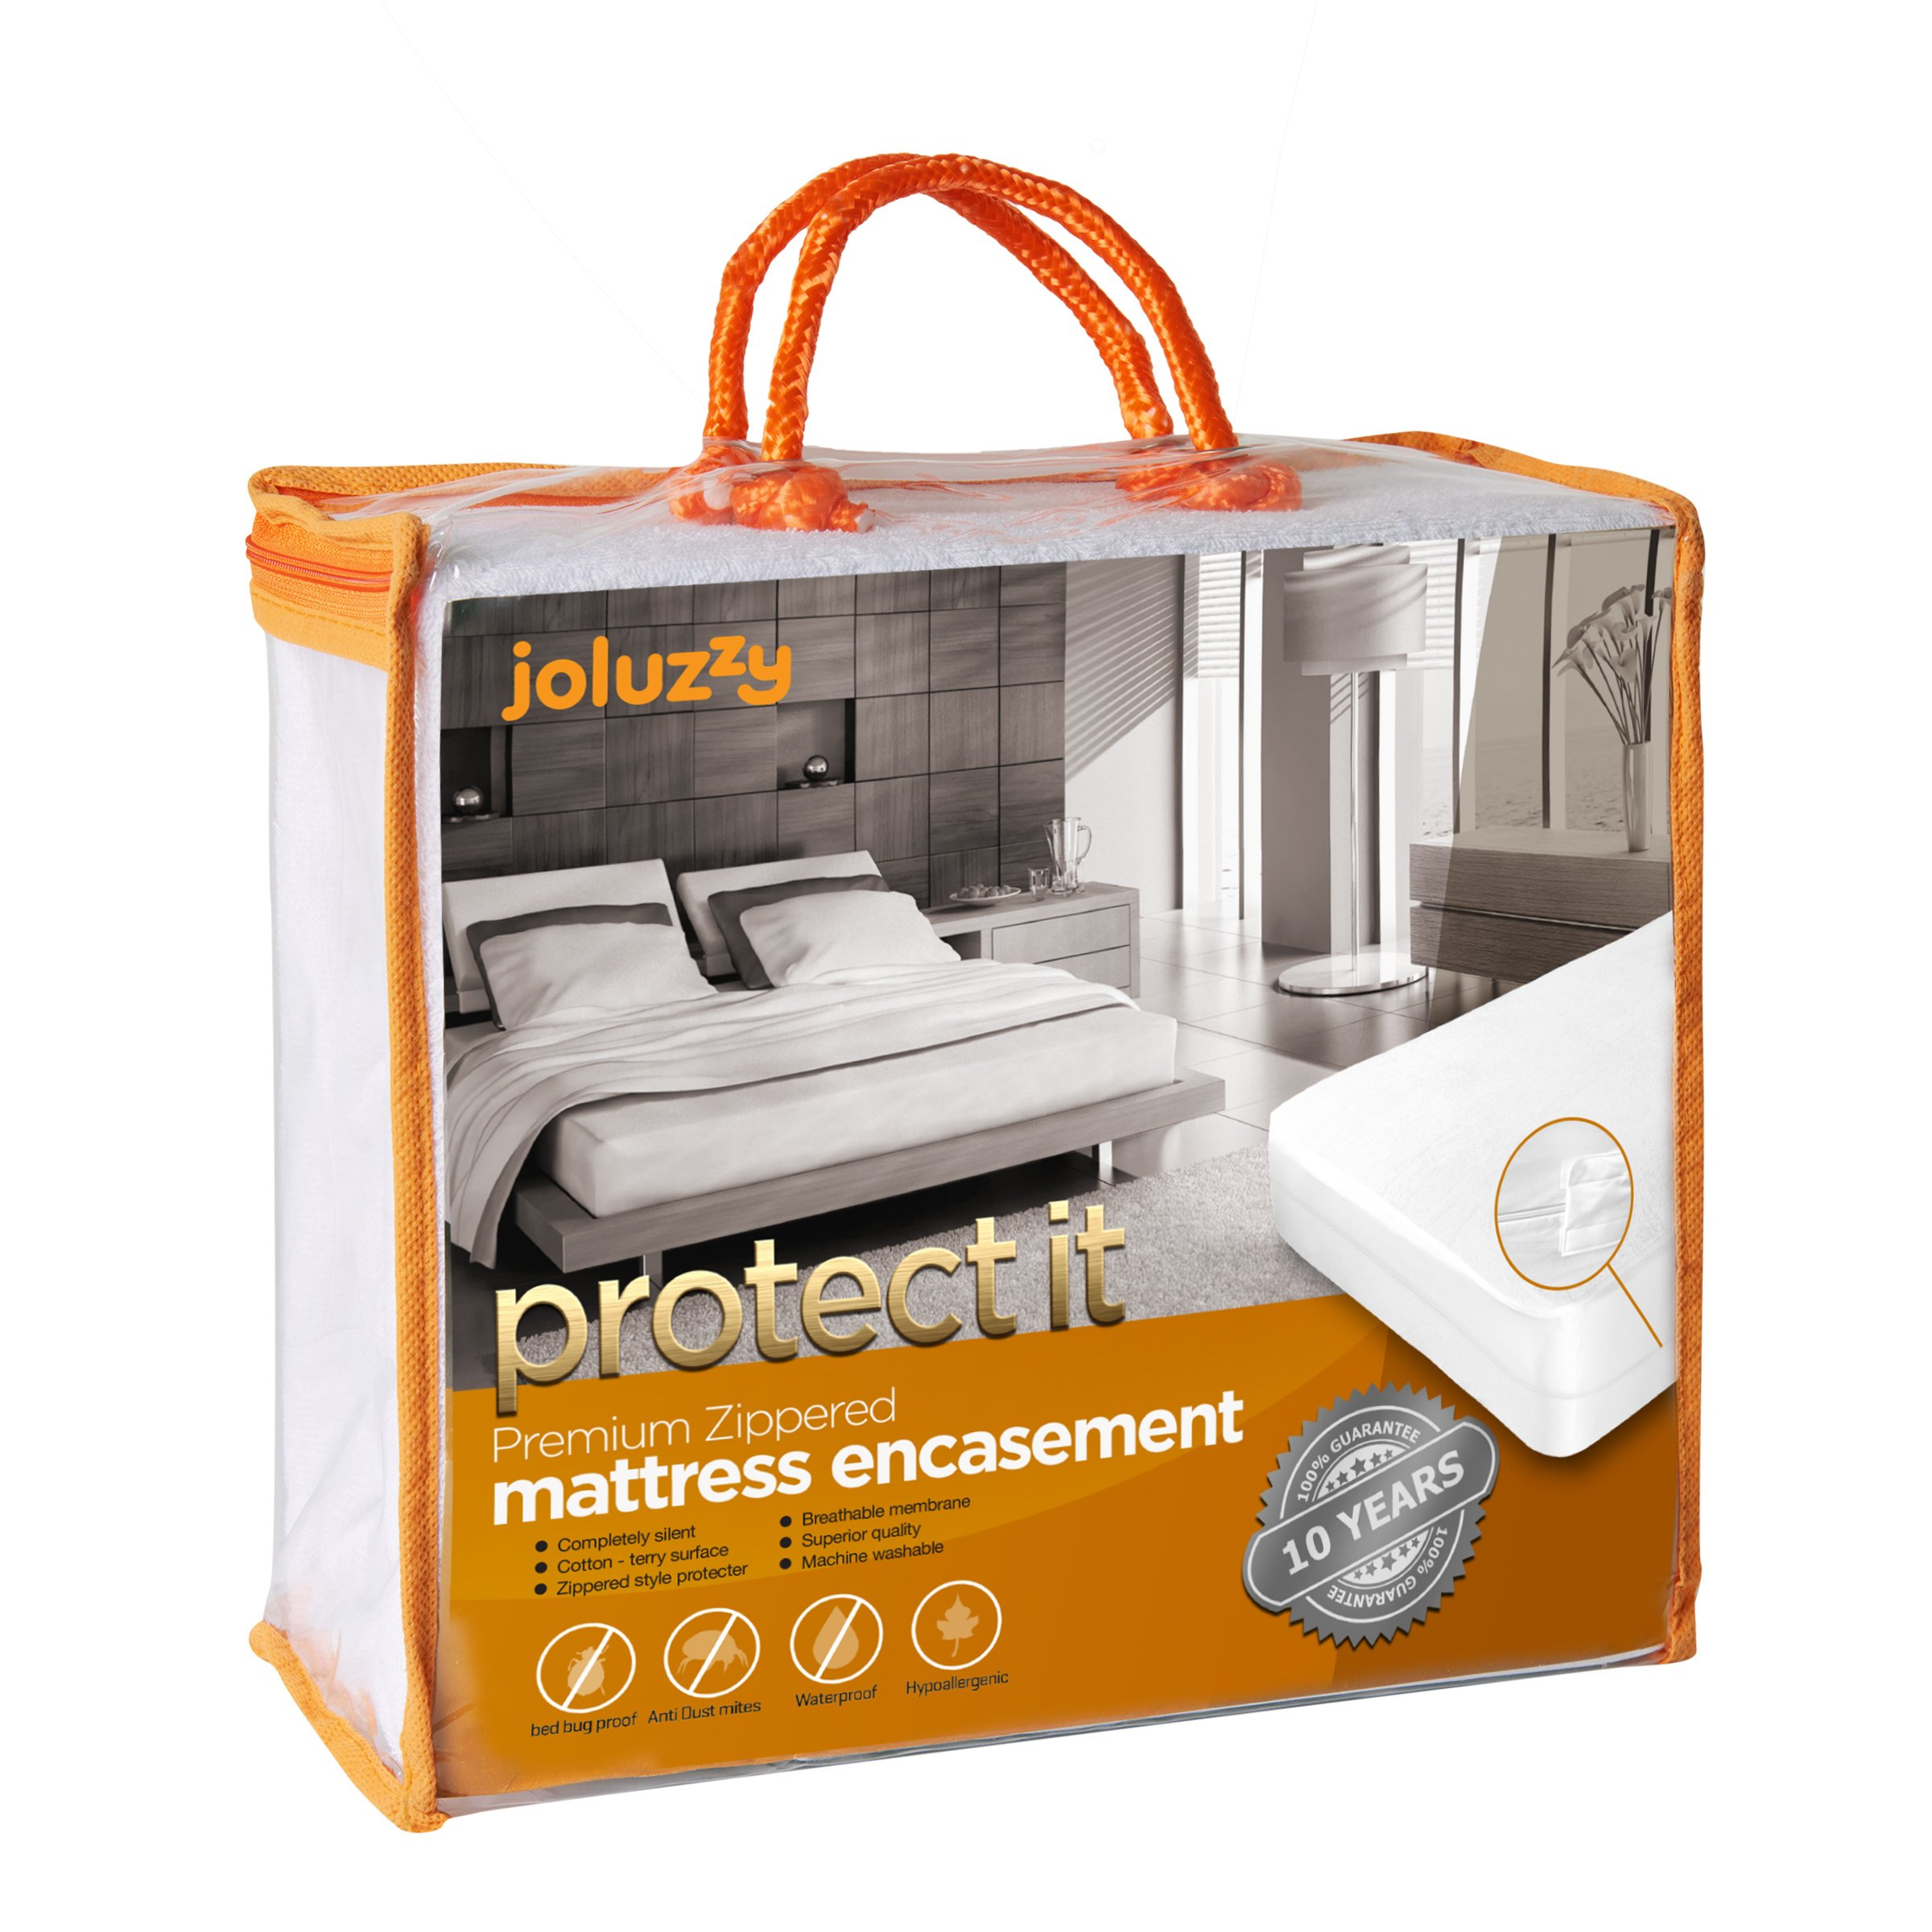 joluzzy Zippered Mattress Protector - 100% Bed Bug Proof/Waterproof Six-Sided Mattress Encasement - Cotton Terry, Breathable, Noiseless, Hypoallergenic, Vinyl-Free, Full Size